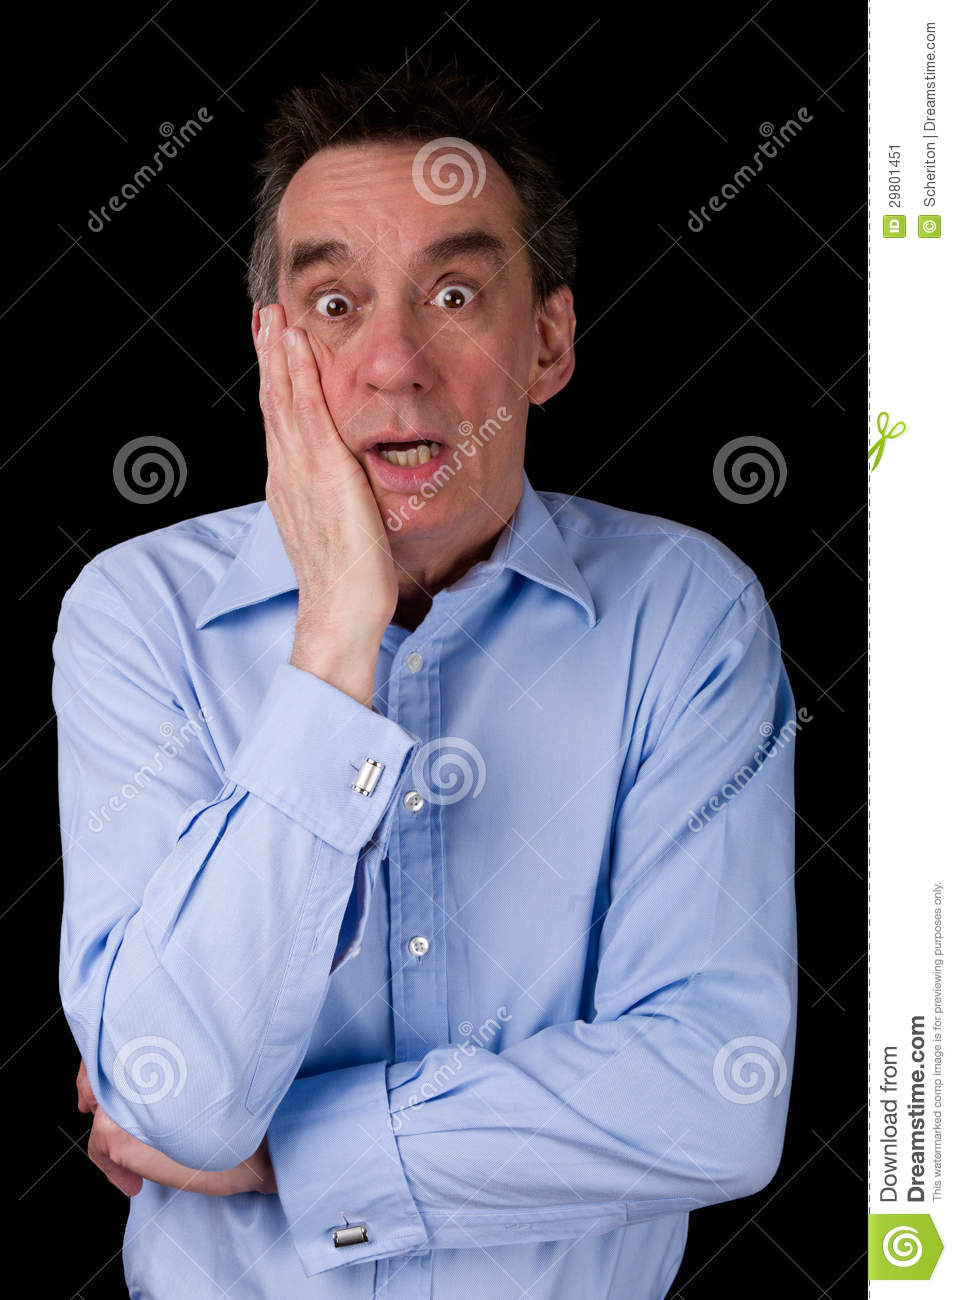 Download Shocked Surprised Business Man Hand To Face Stock Image - Image of black, grimace: 29801451